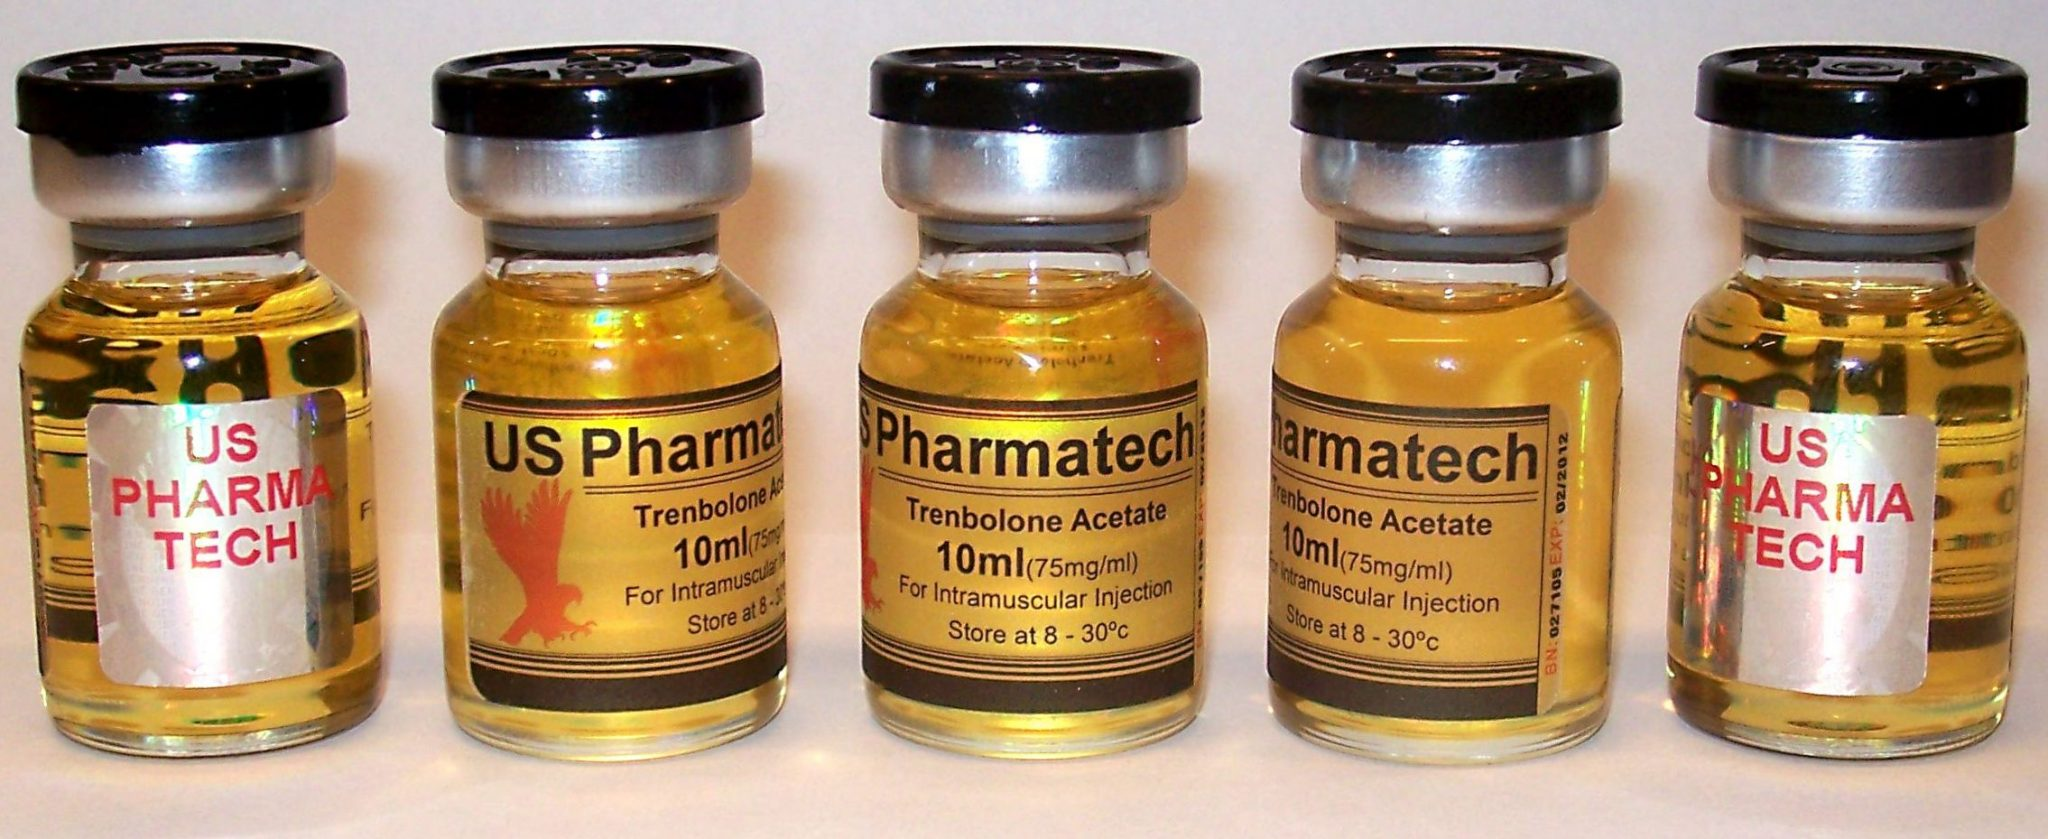 is trenbolone acetate liver toxic